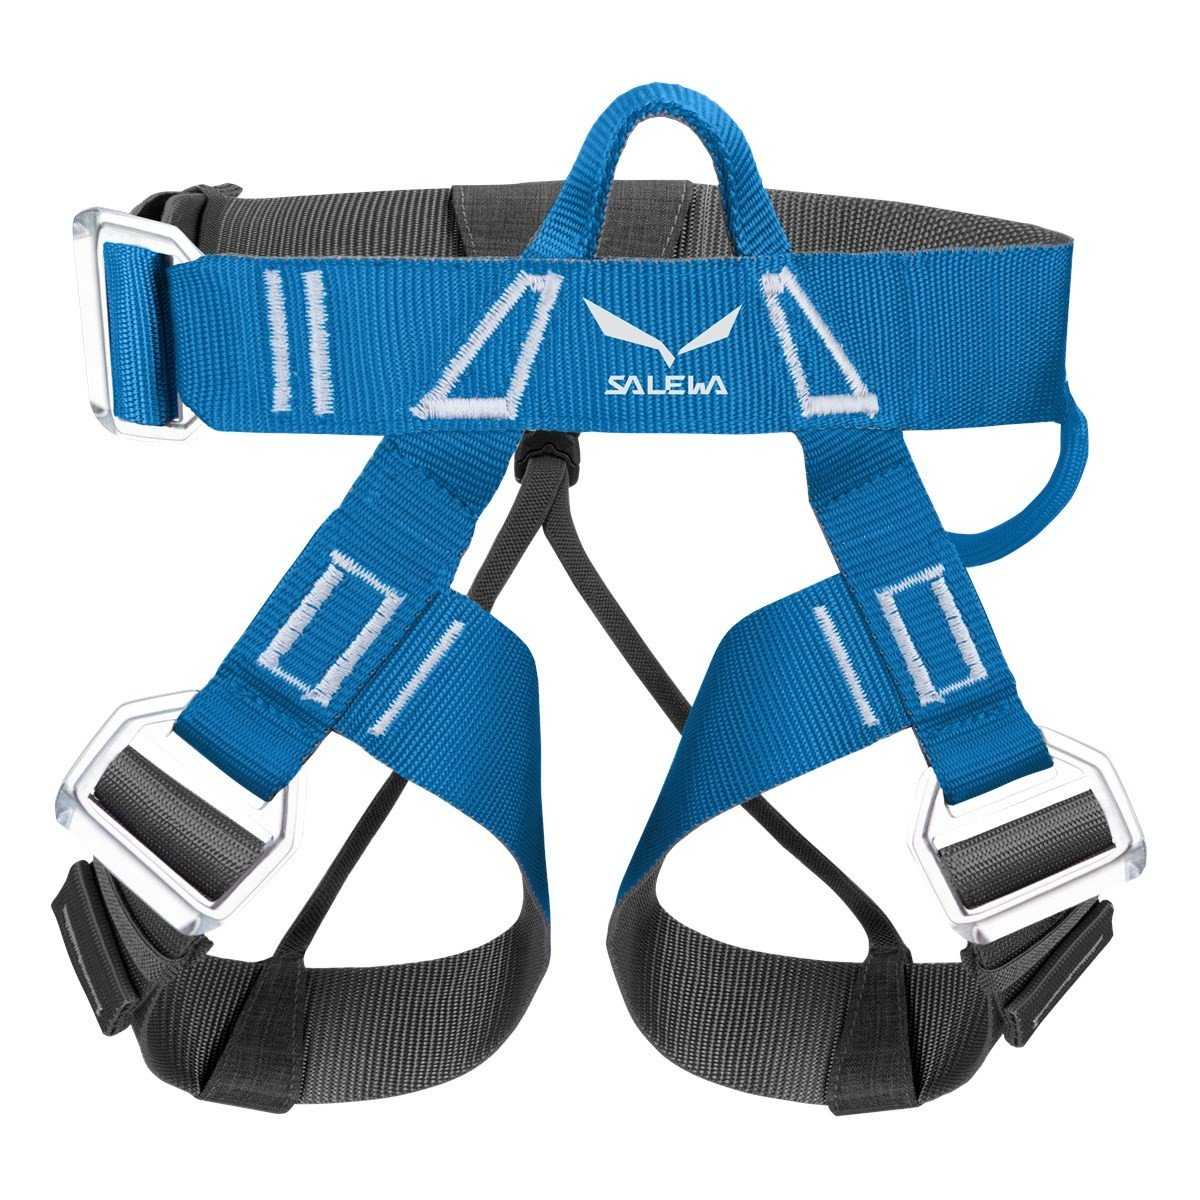 Salewa VIA FERRATA EVO ROOKIE harness